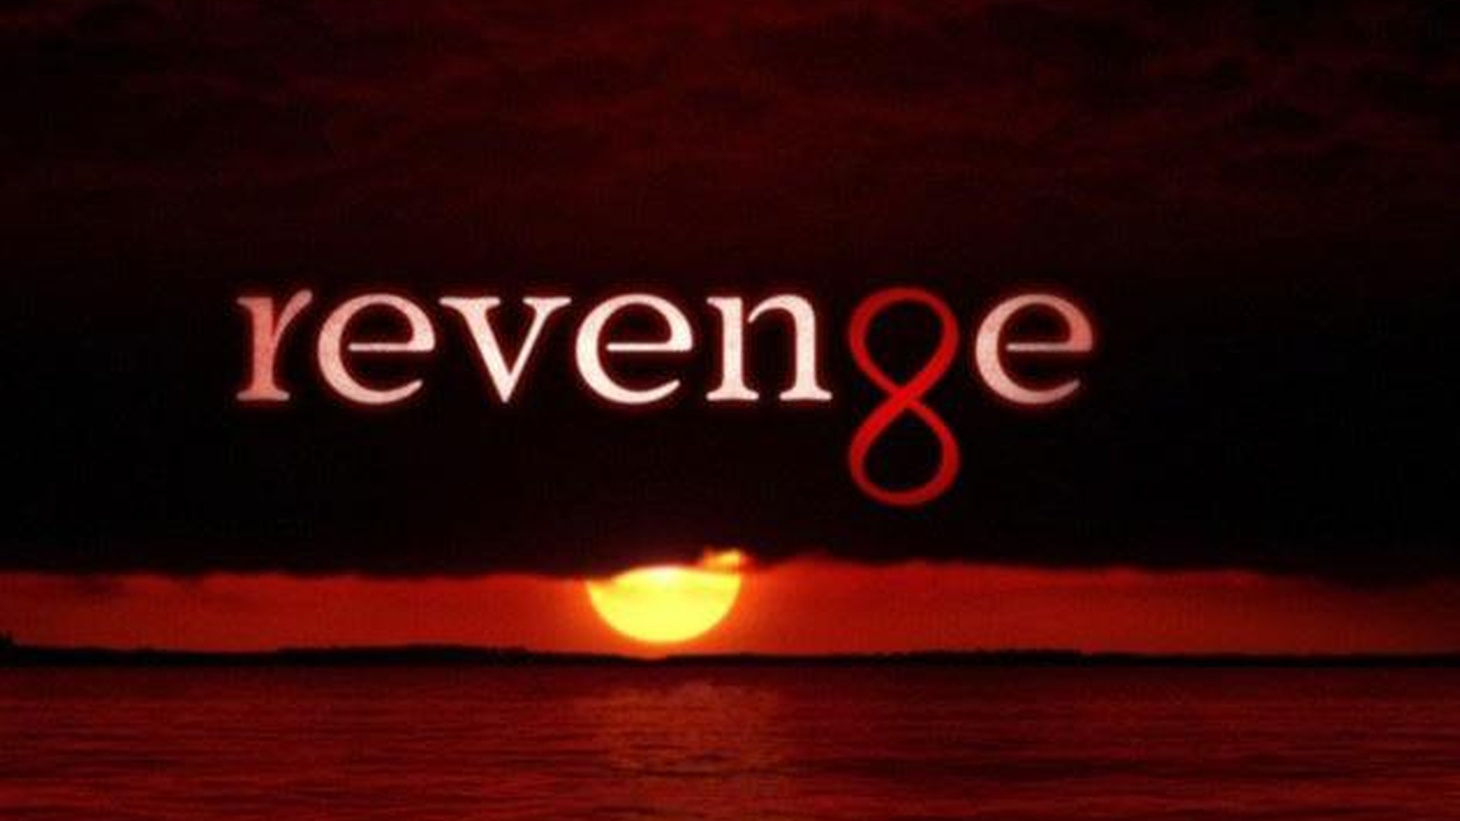 """Elvis Mitchell talks to Mike Kelley, creator and executive producer of the popular ABC drama """"Revenge,"""" which is based on Alexandre Dumas' novel """"The Count of Monte Cristo."""""""